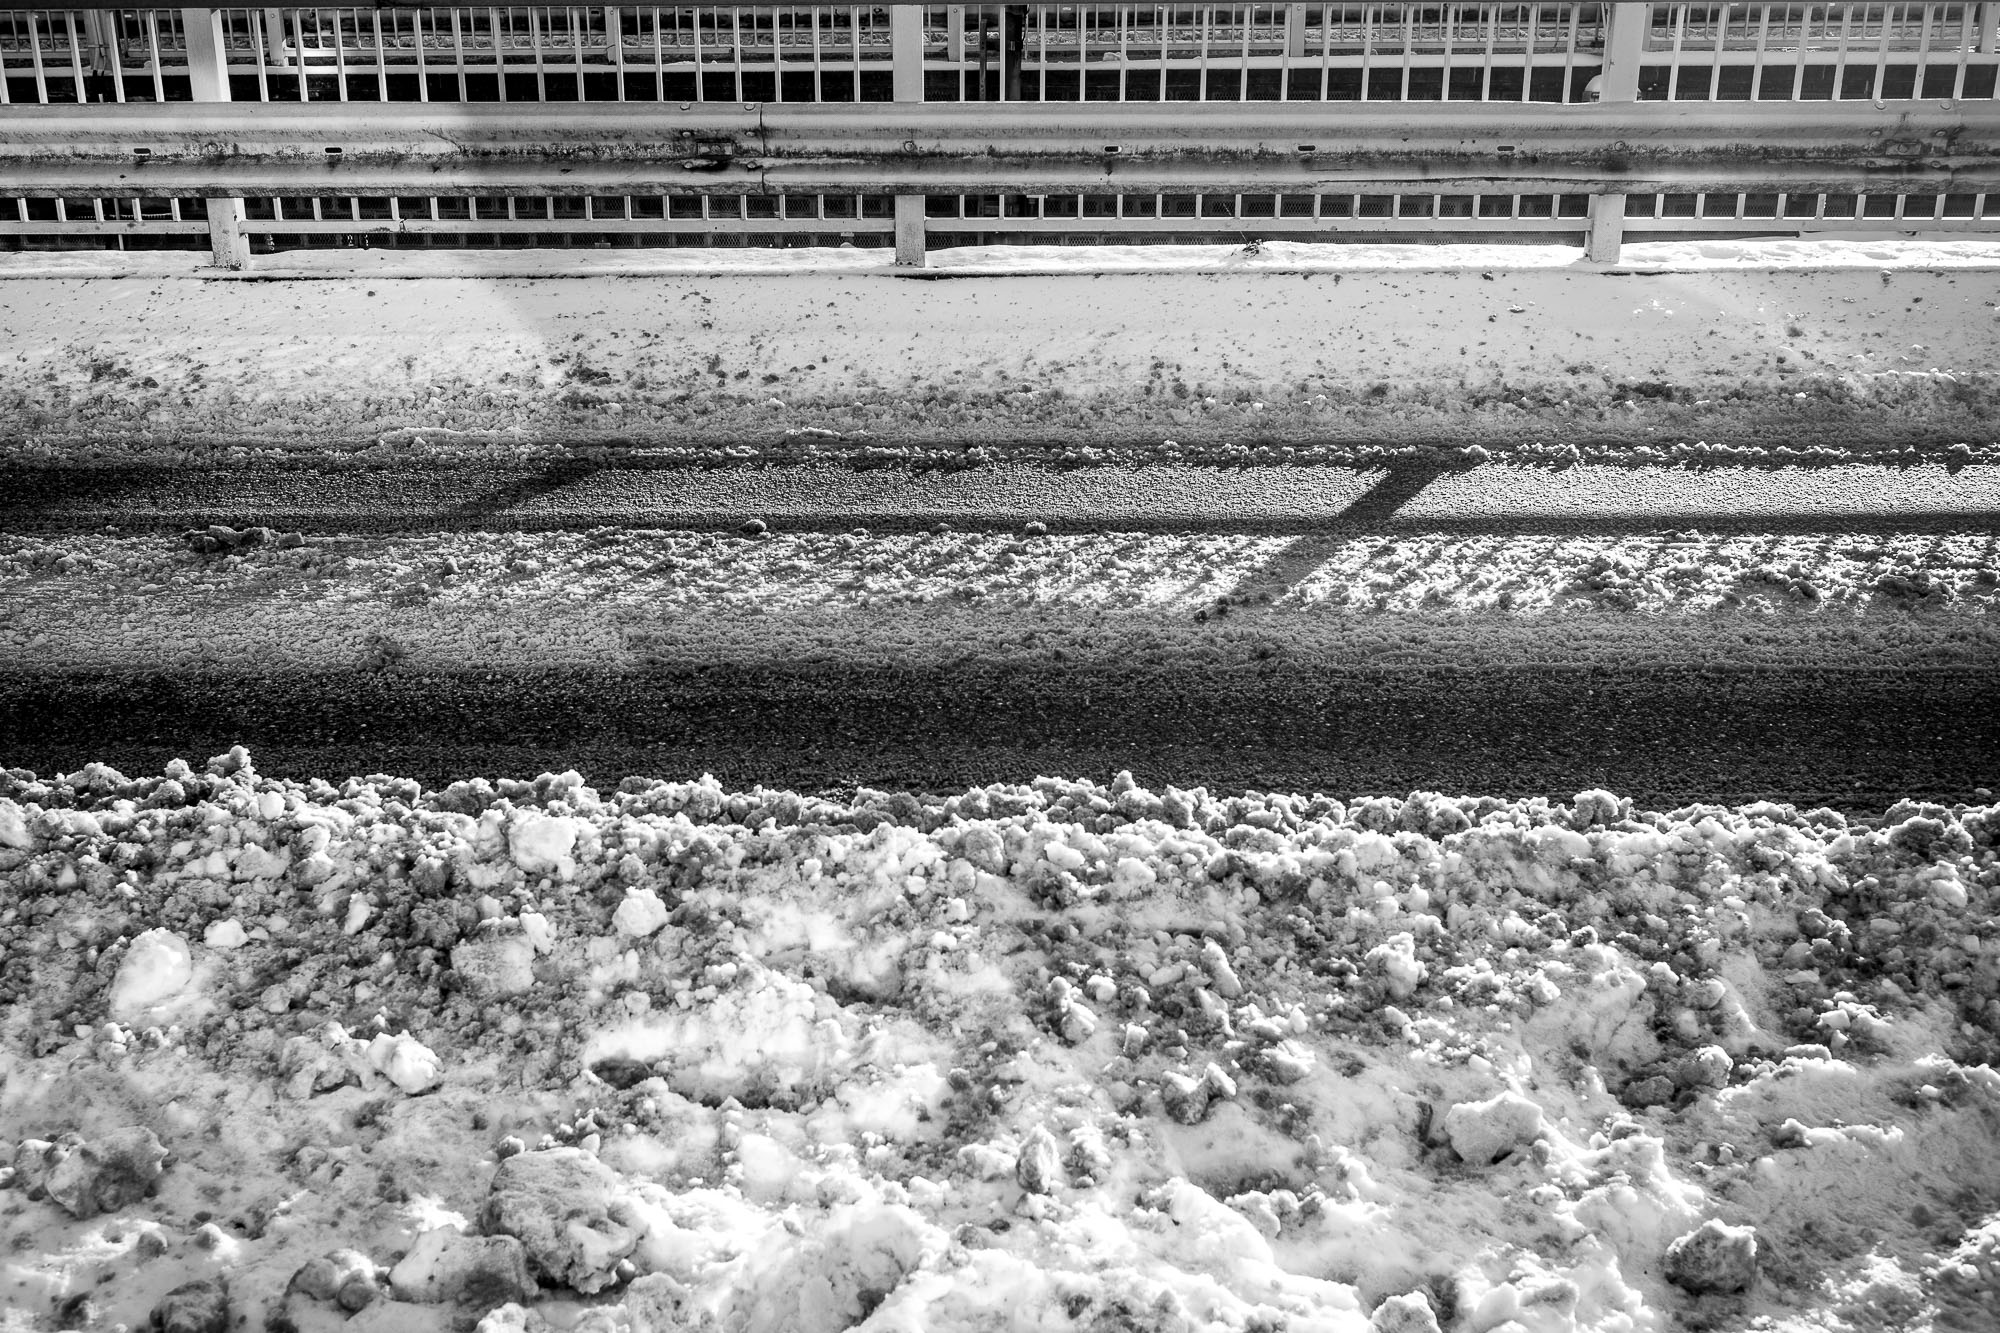 Snow covered street with tire tracks and a railing running in parallel in the background